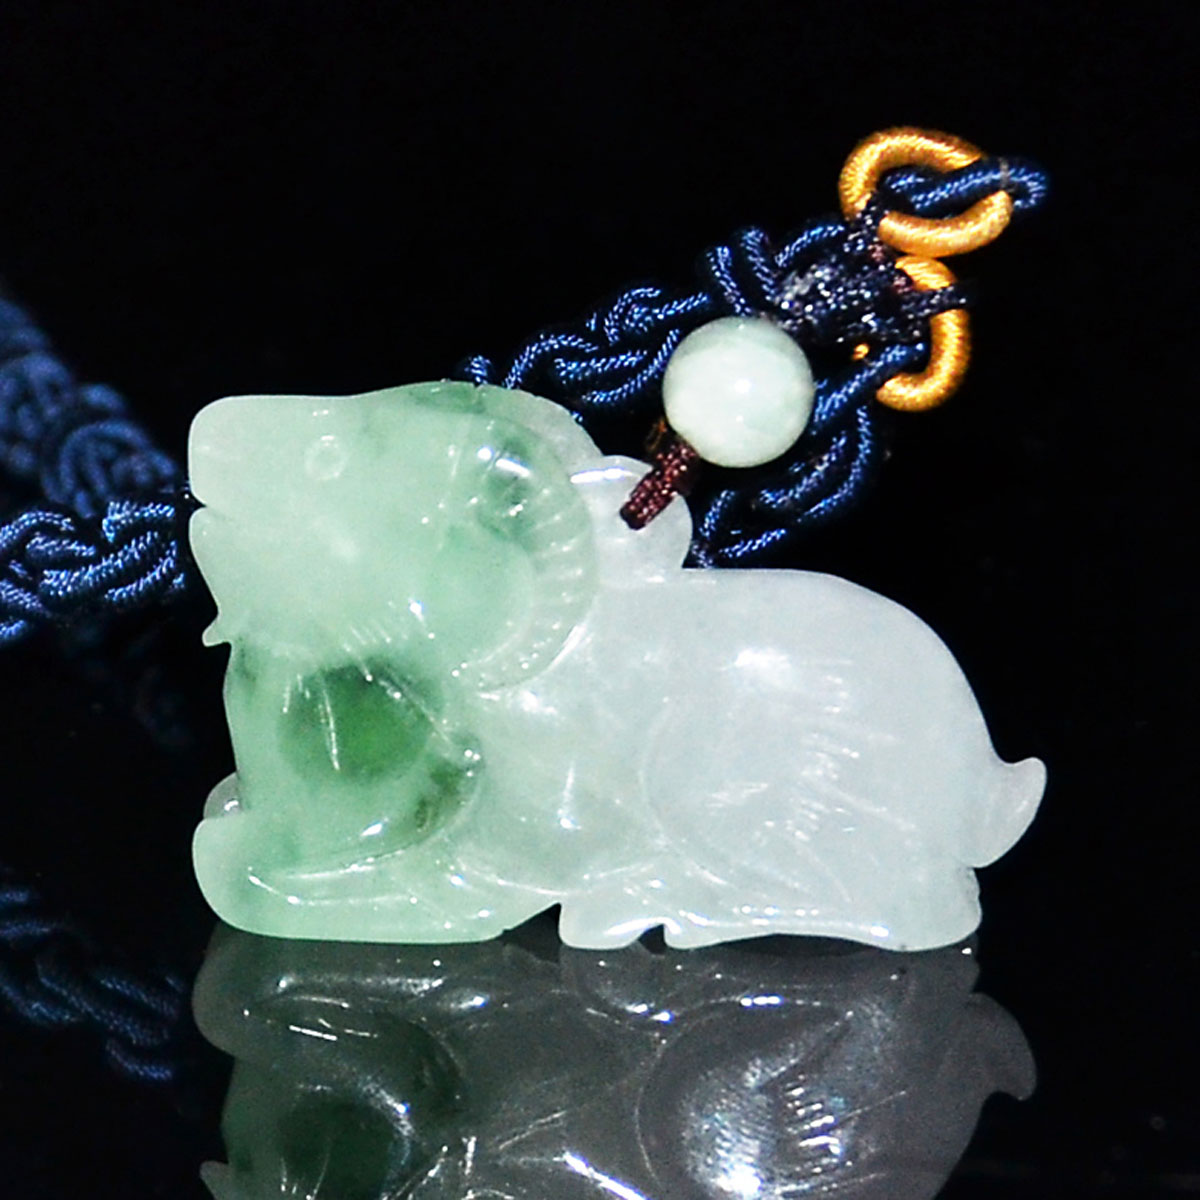 Lot 3 - 冰種翡翠雕羊形項飾 Glass Jadeite Carved Recumbent Sheep-form Pendant Necklace. Length: 1¾ in ( 4.4 cm)